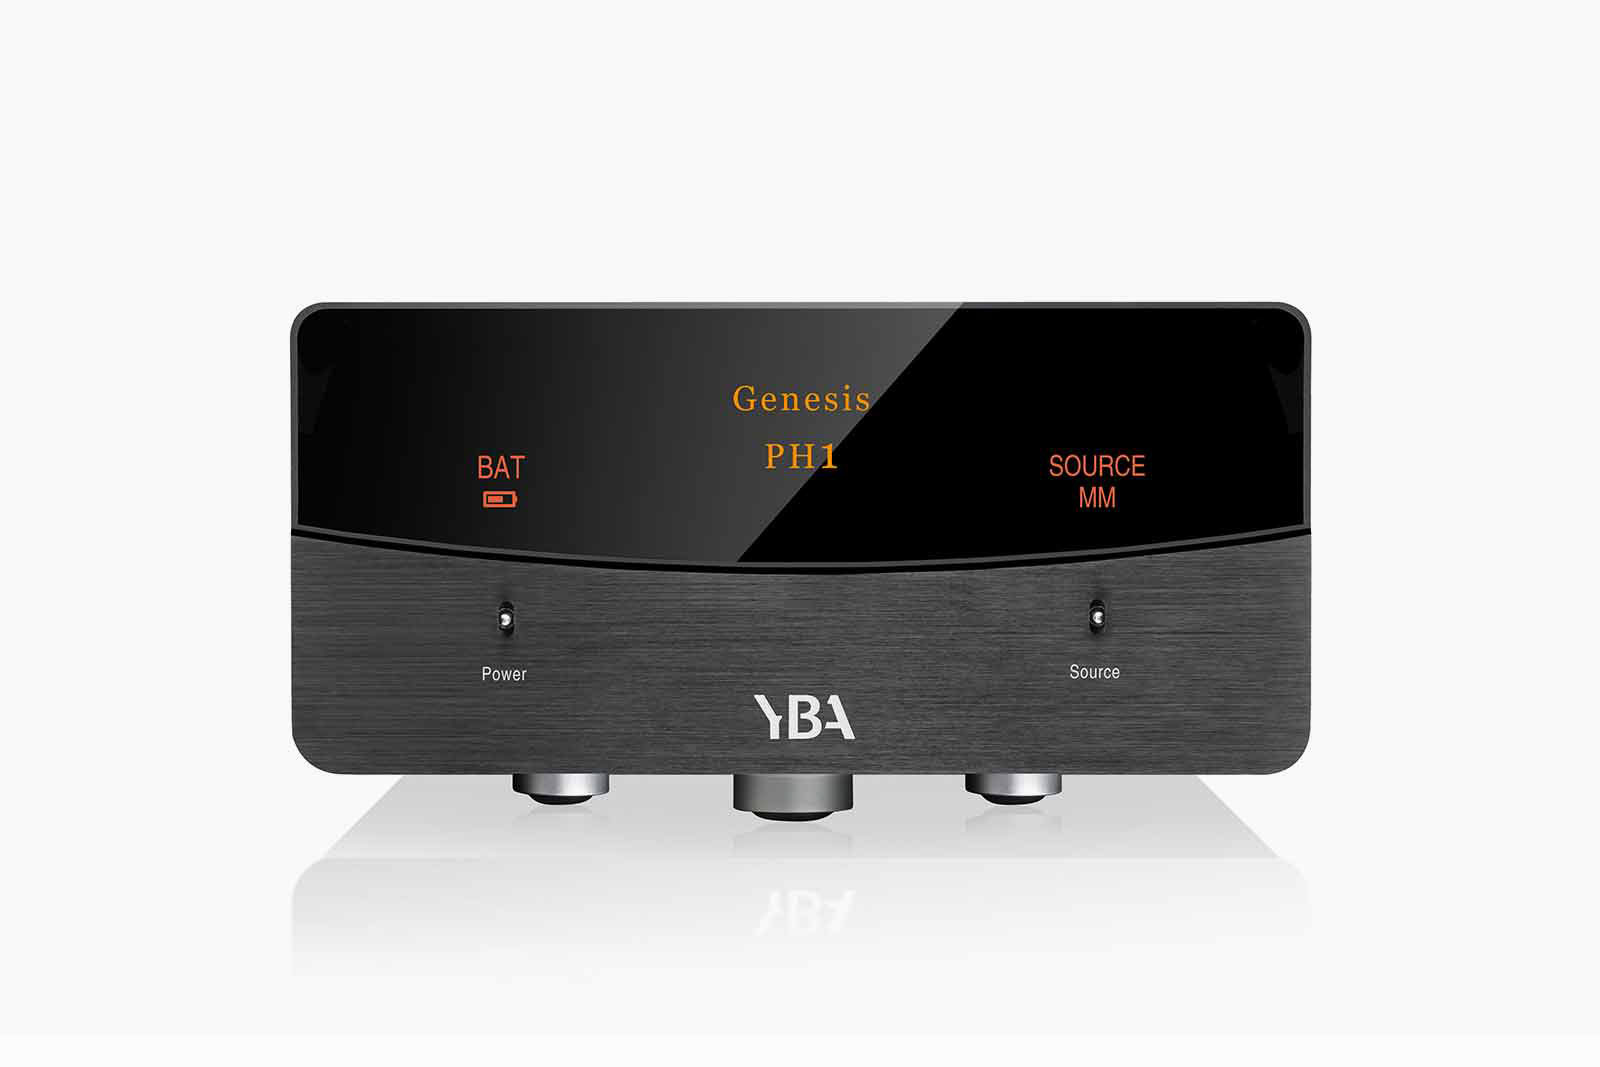 genesis ph1 phono preamplifier yba high end hifiAutomatic Charger For Battery Operated Hi Fi Preamps #19